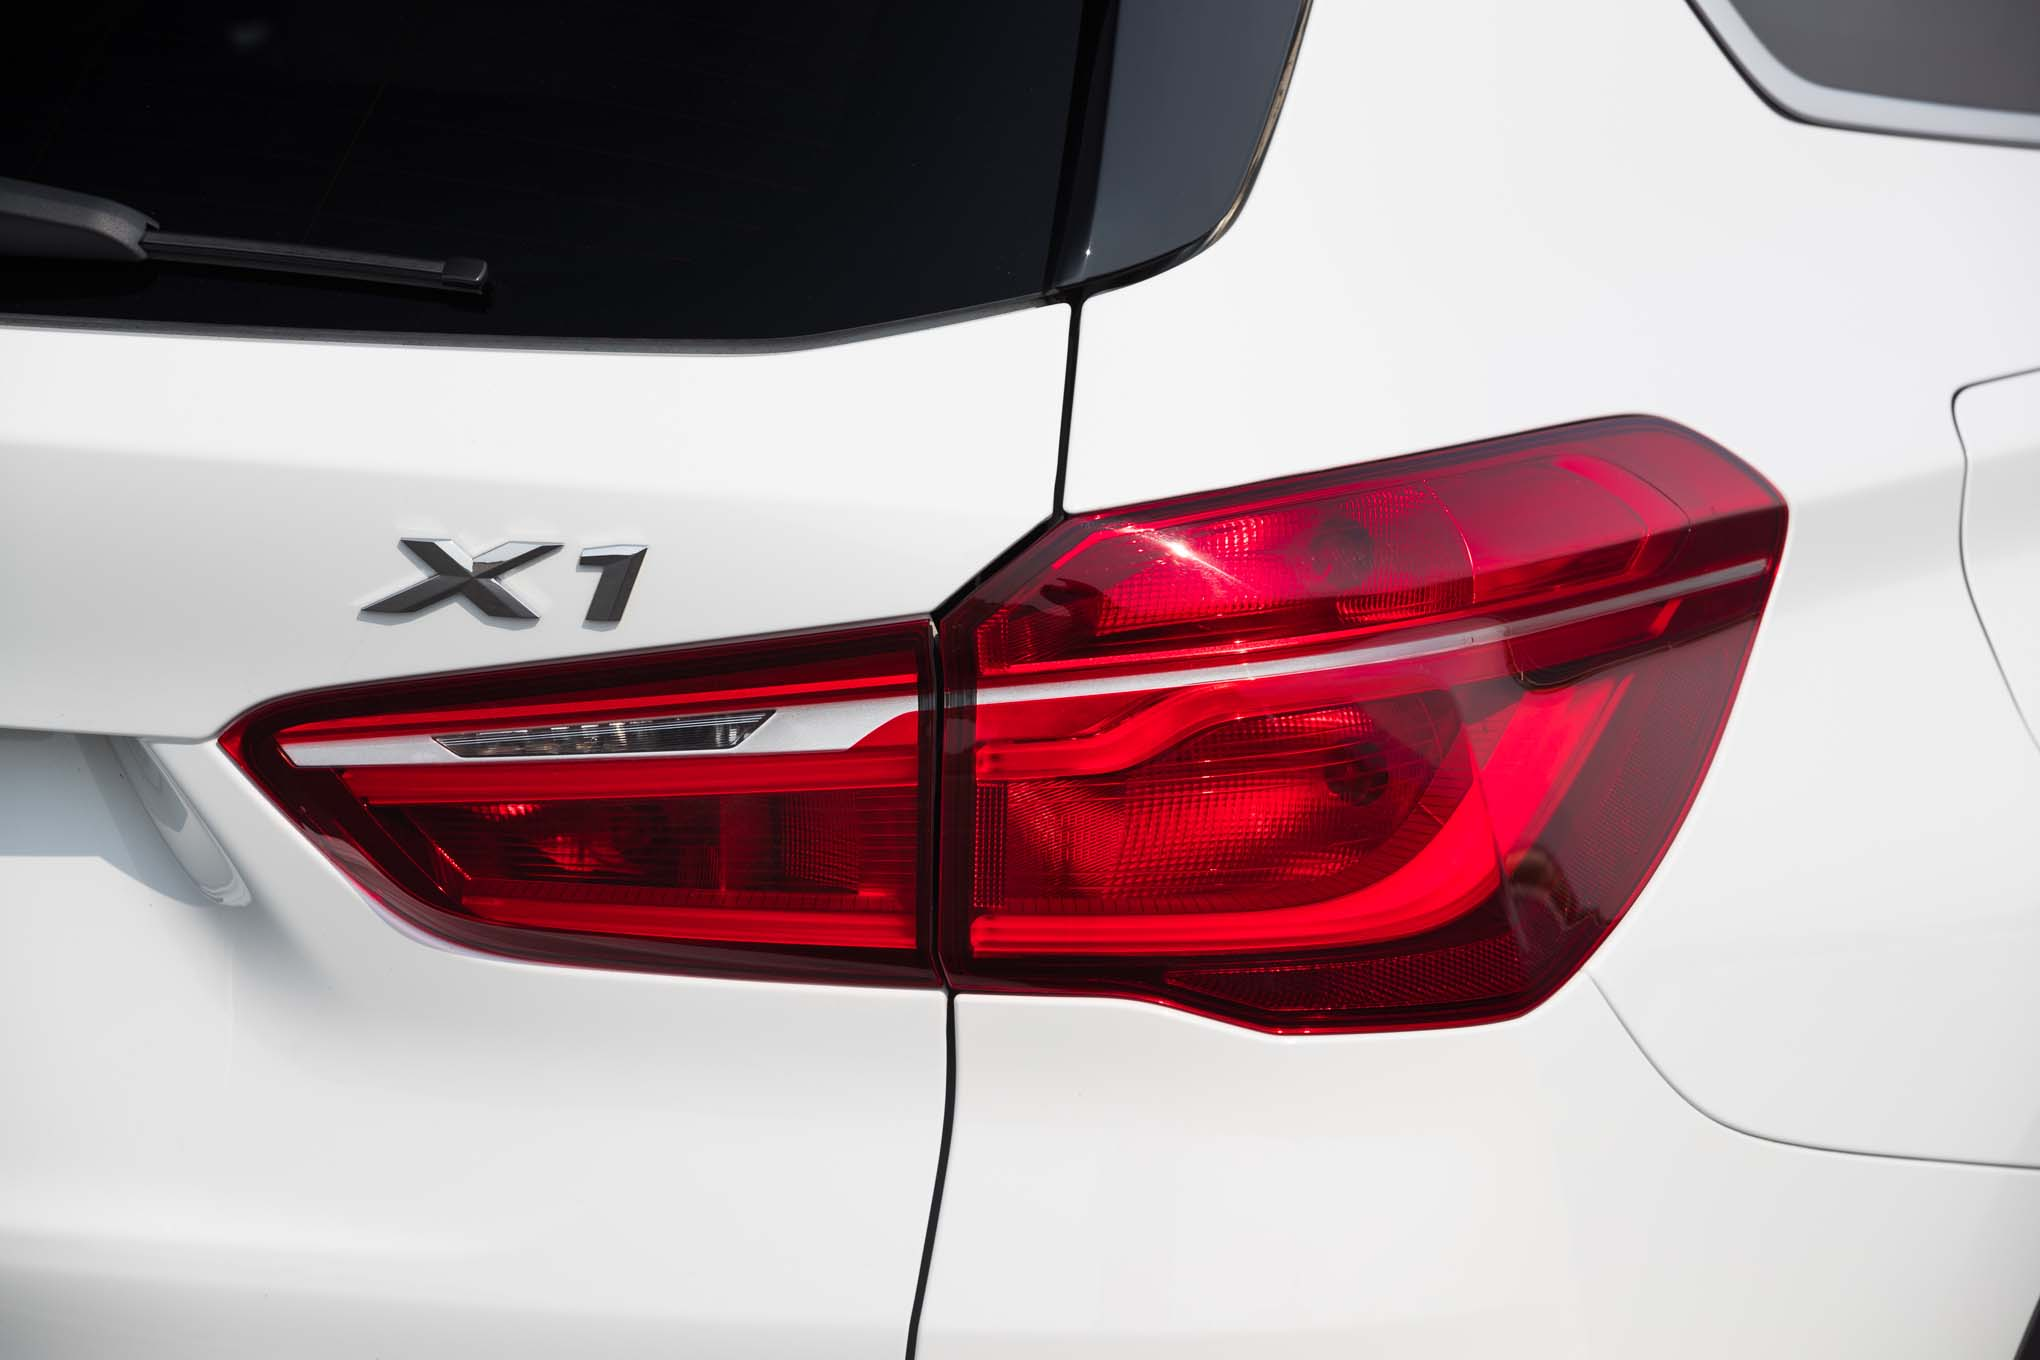 2017 BMW X1 XDrive28i Exterior View Taillight (Photo 21 of 23)